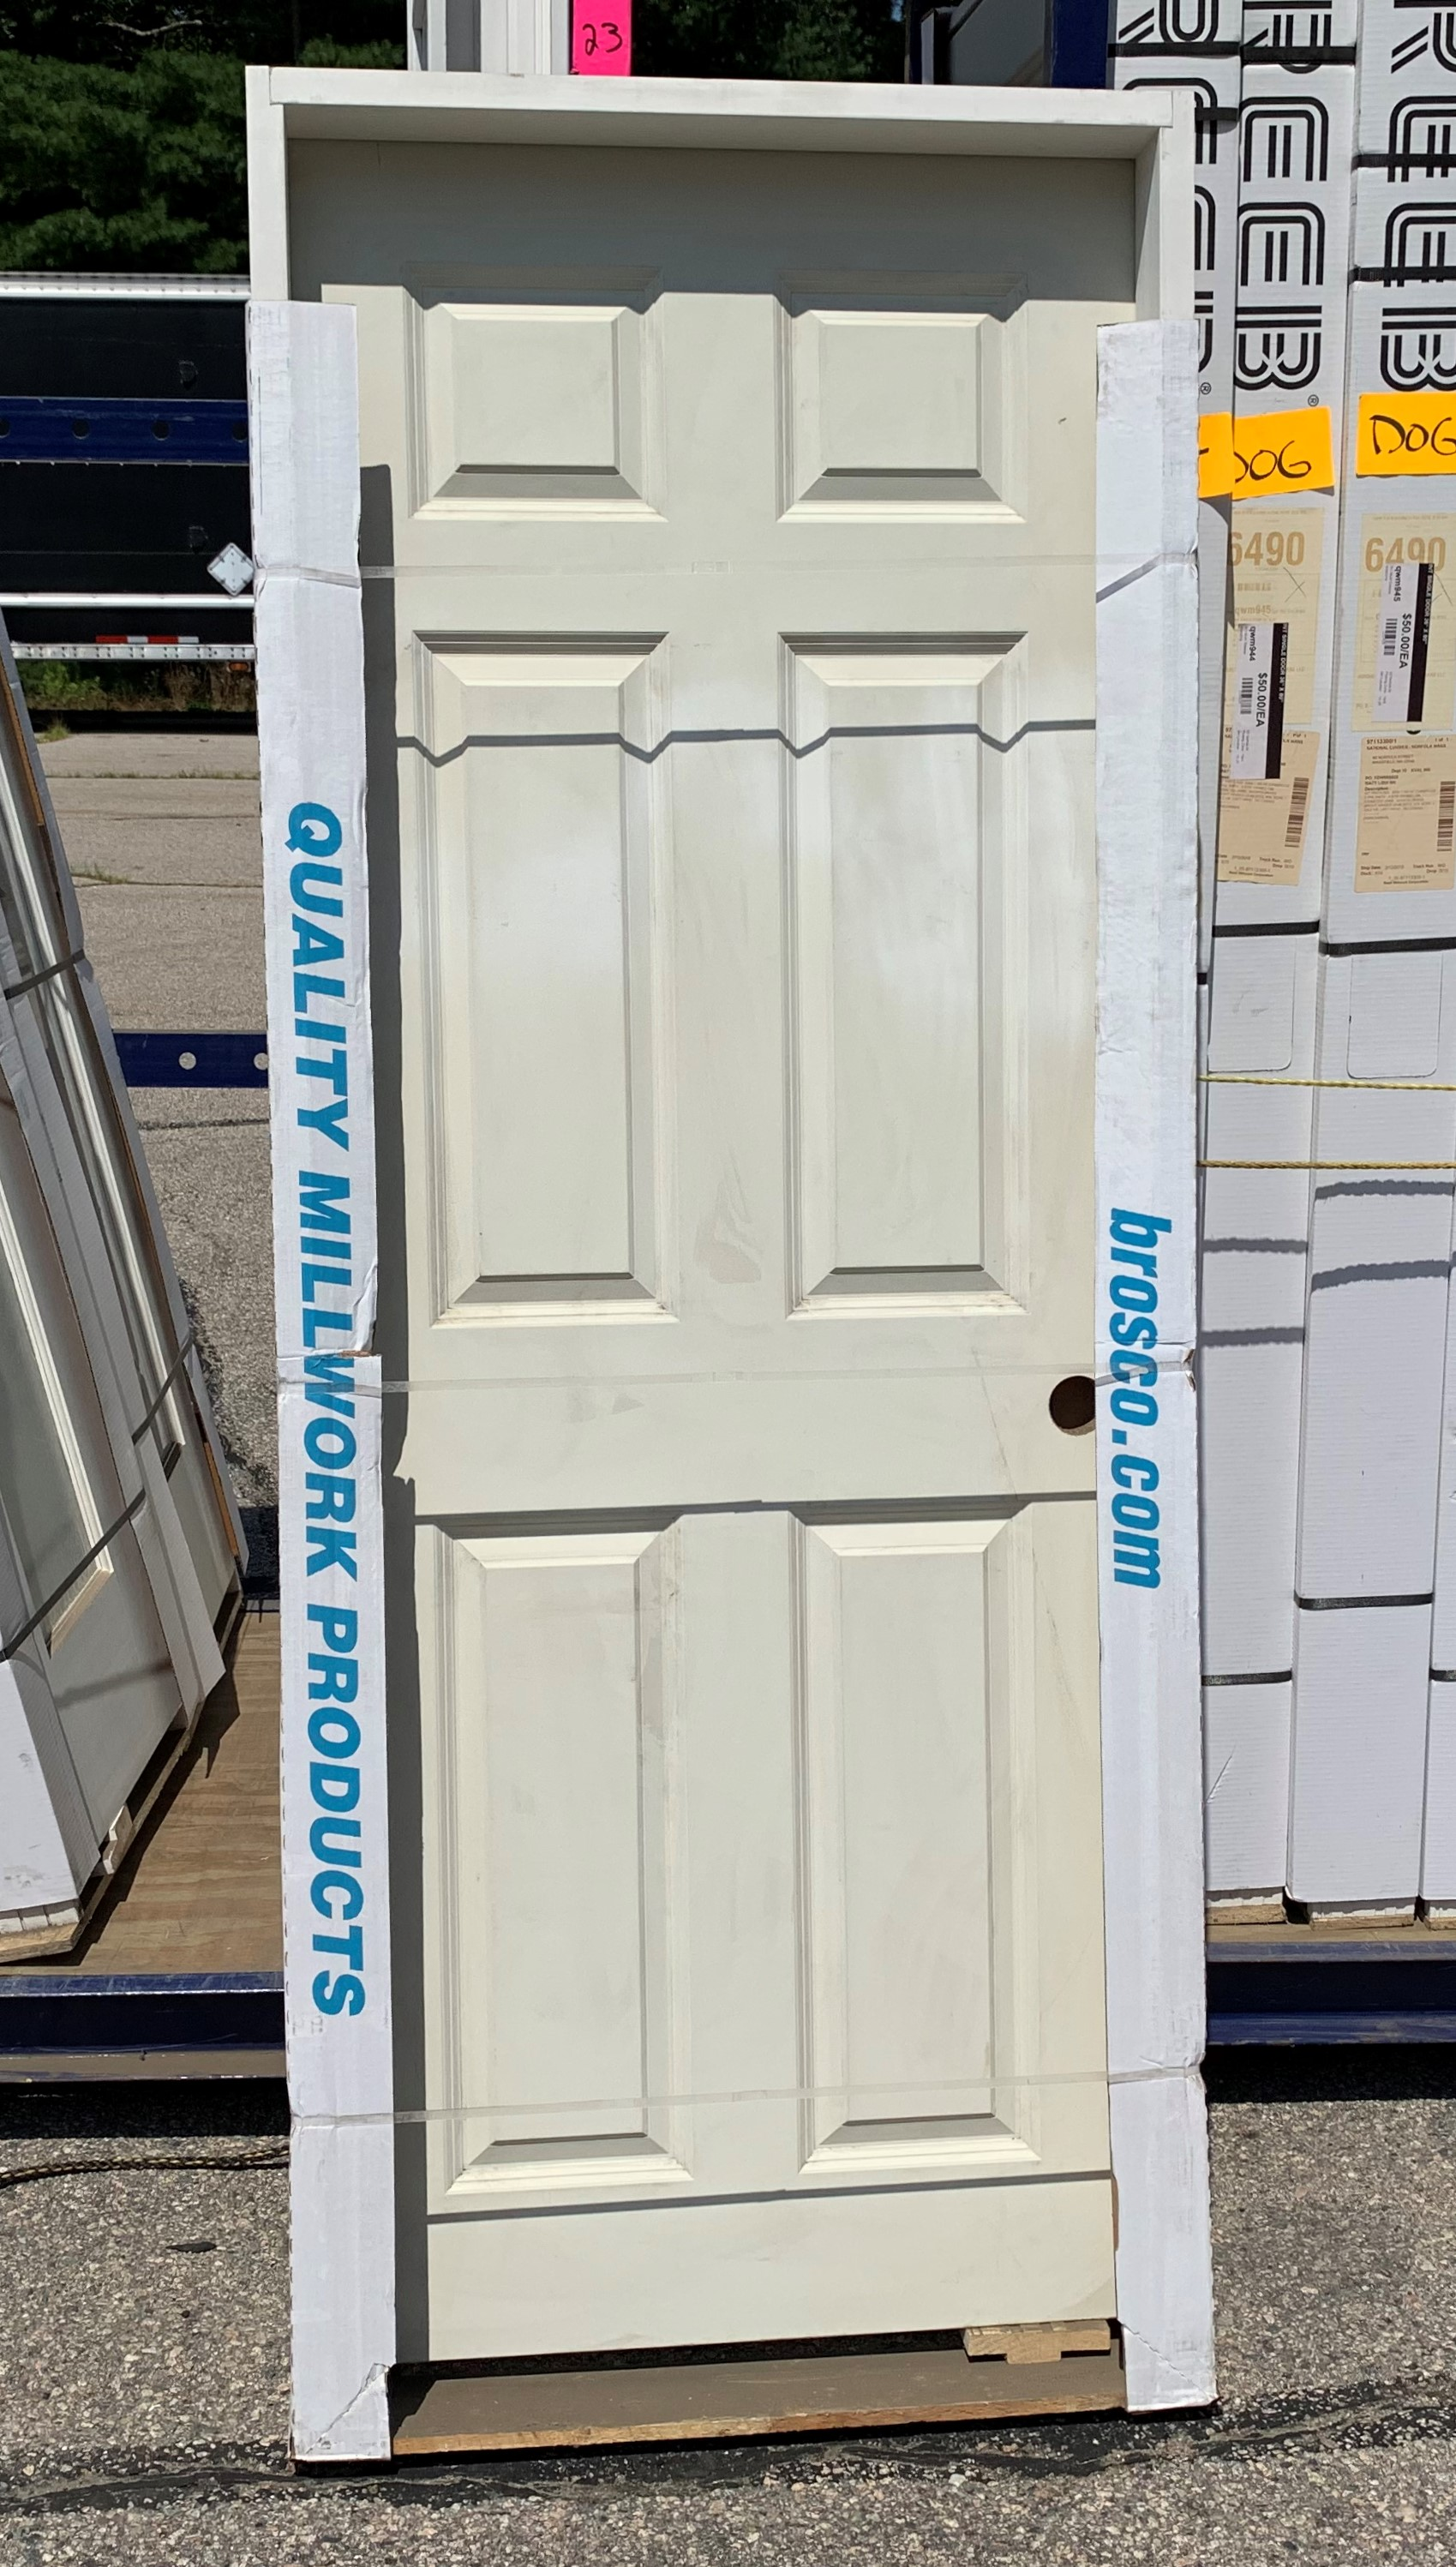 BROSCO 2666 LH Door